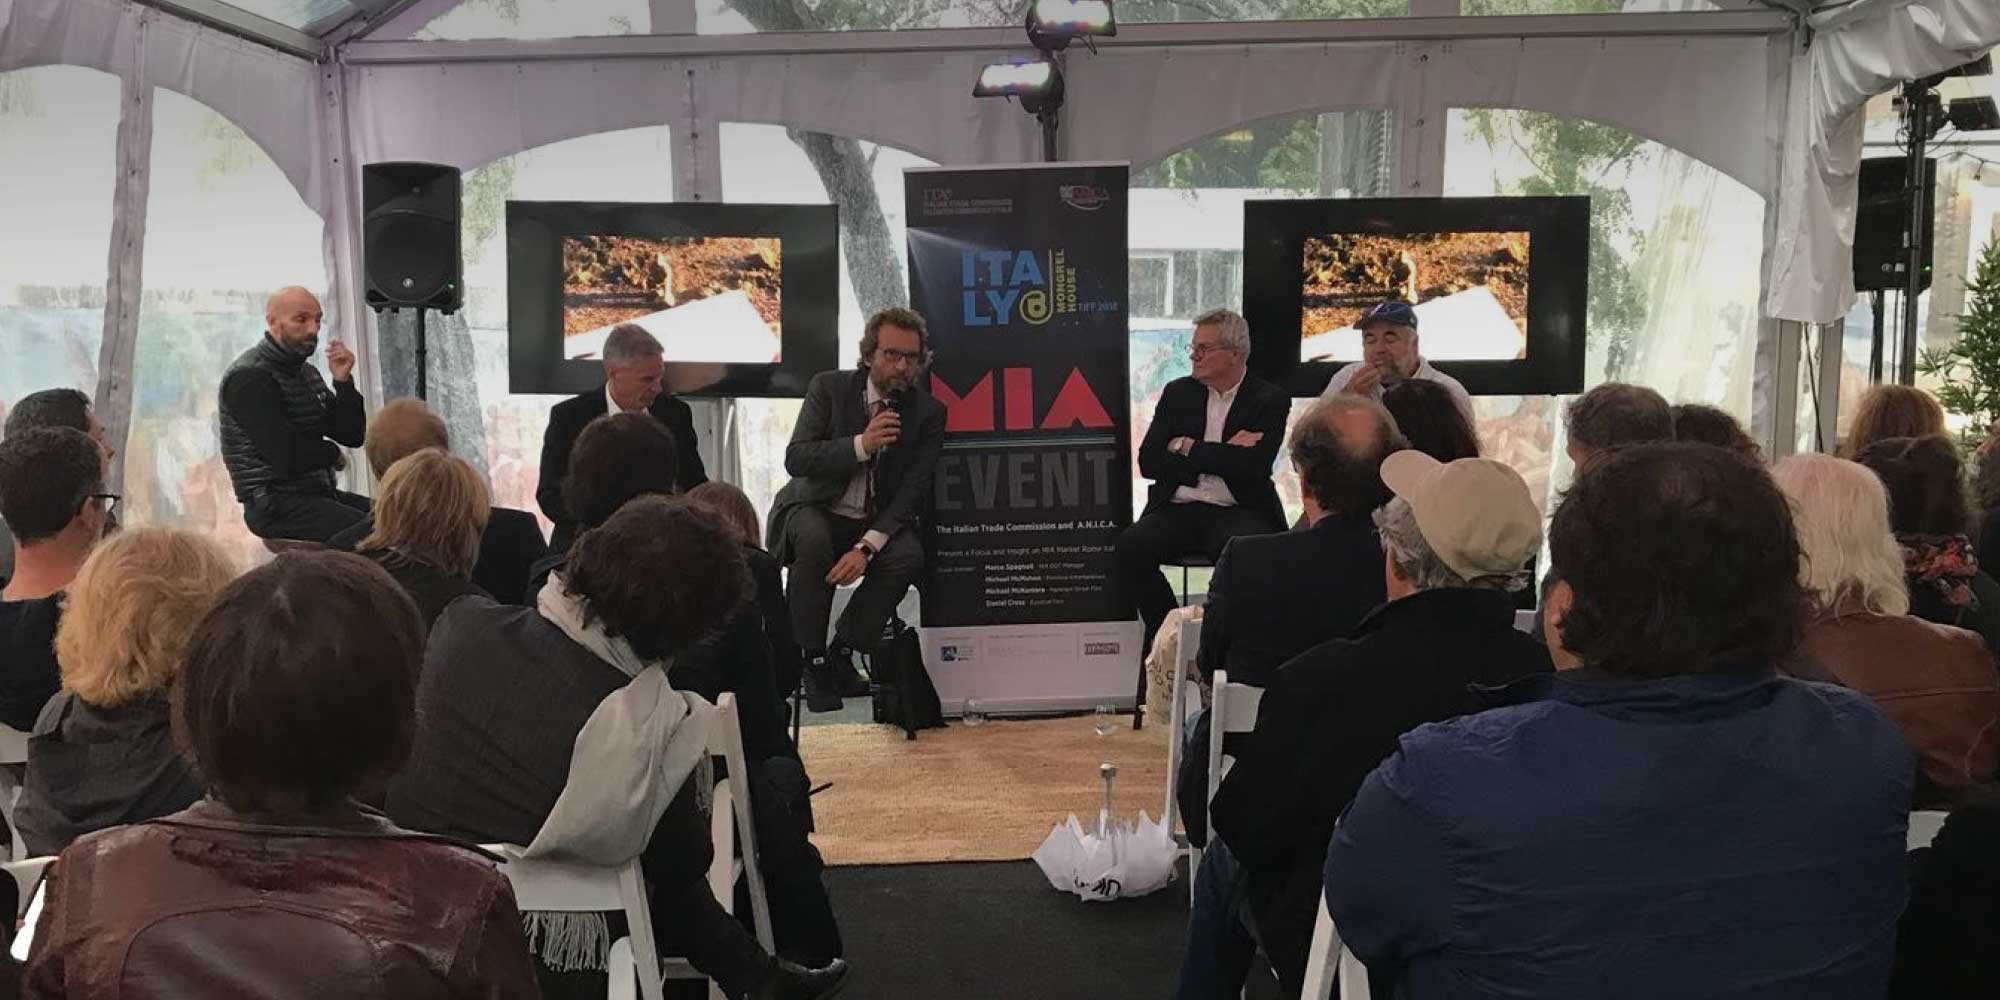 A seminar at the Toronto Festival on the relationship between Mia and North American industry